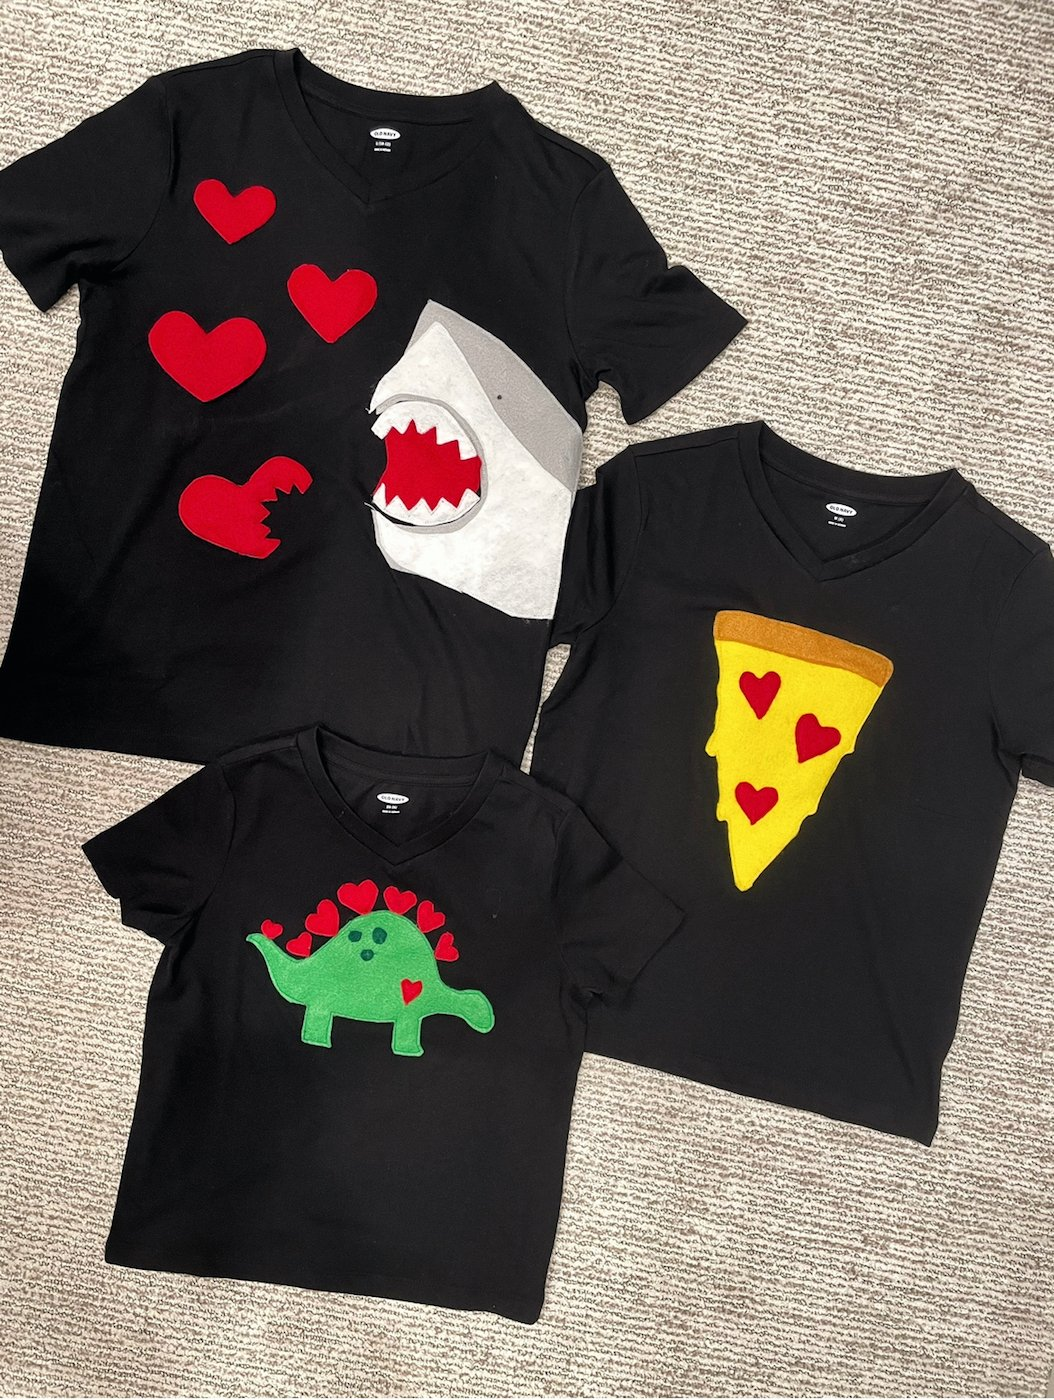 valentines day shirts for boys and girls